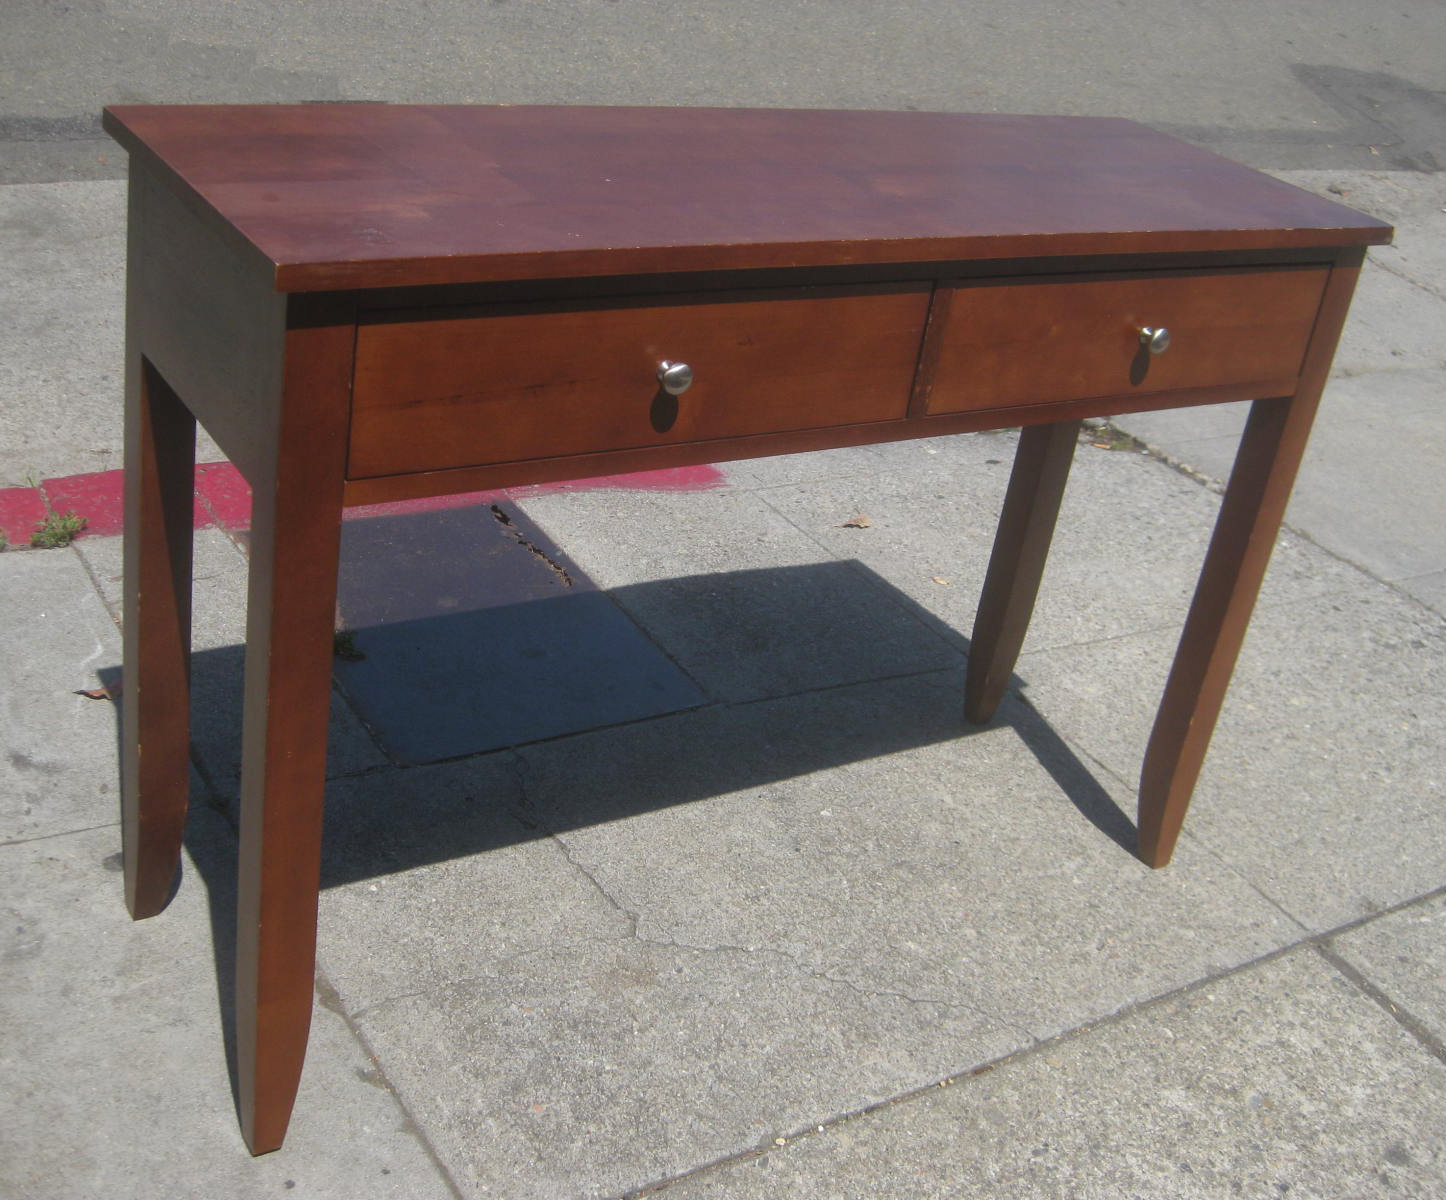 Uhuru furniture collectibles sold console table 85 - Table console extensible solde ...